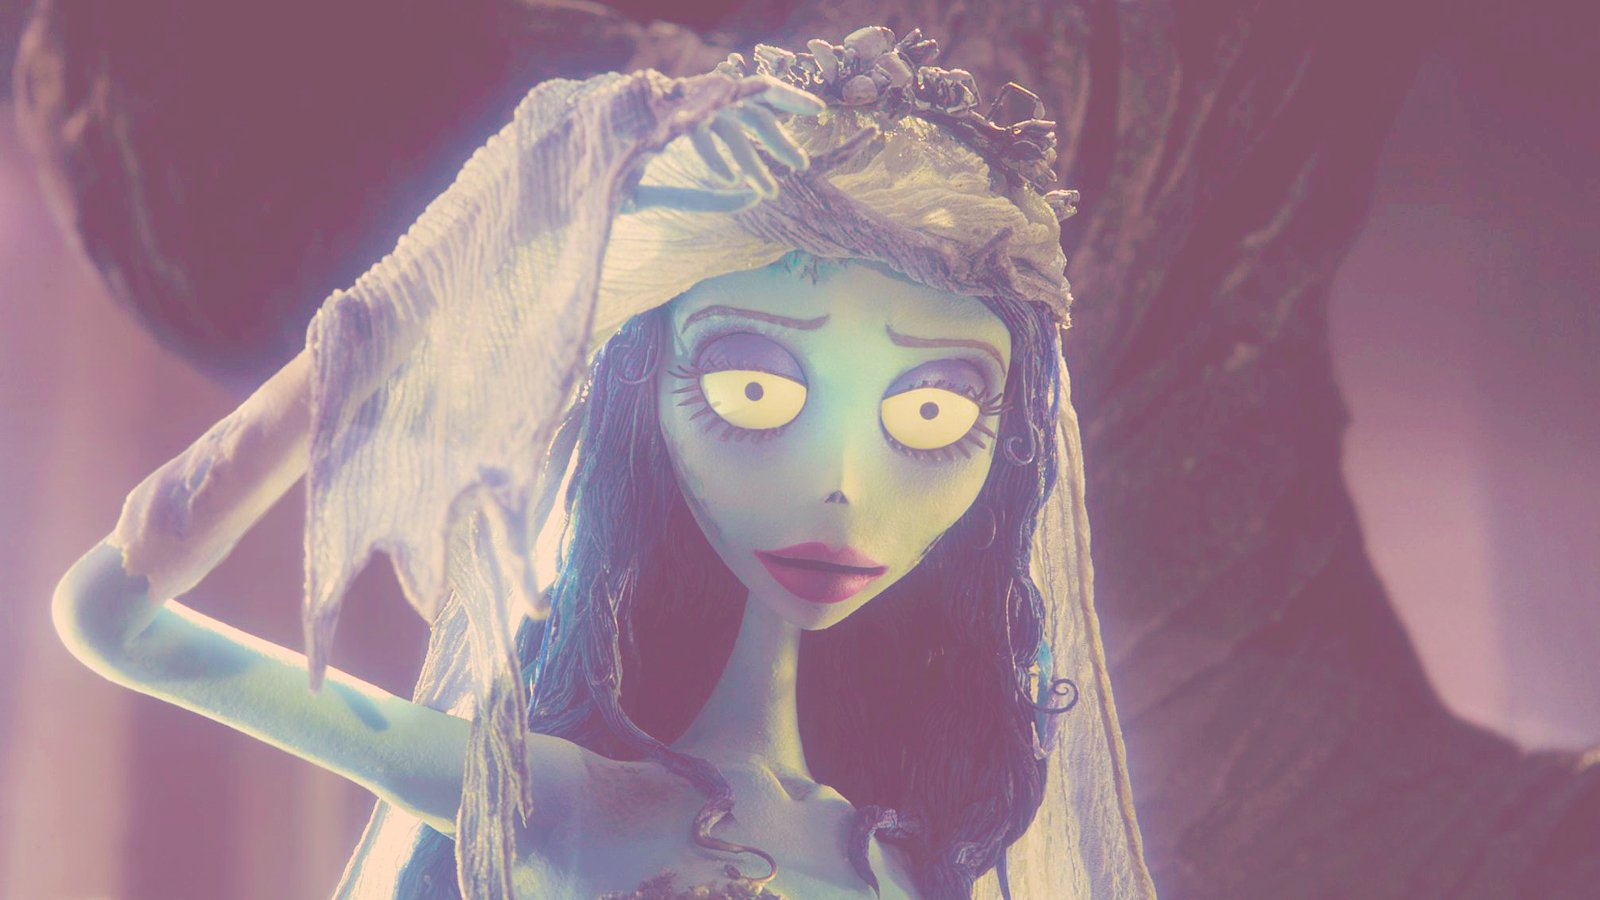 corpse bride movie wallpapers - photo #10